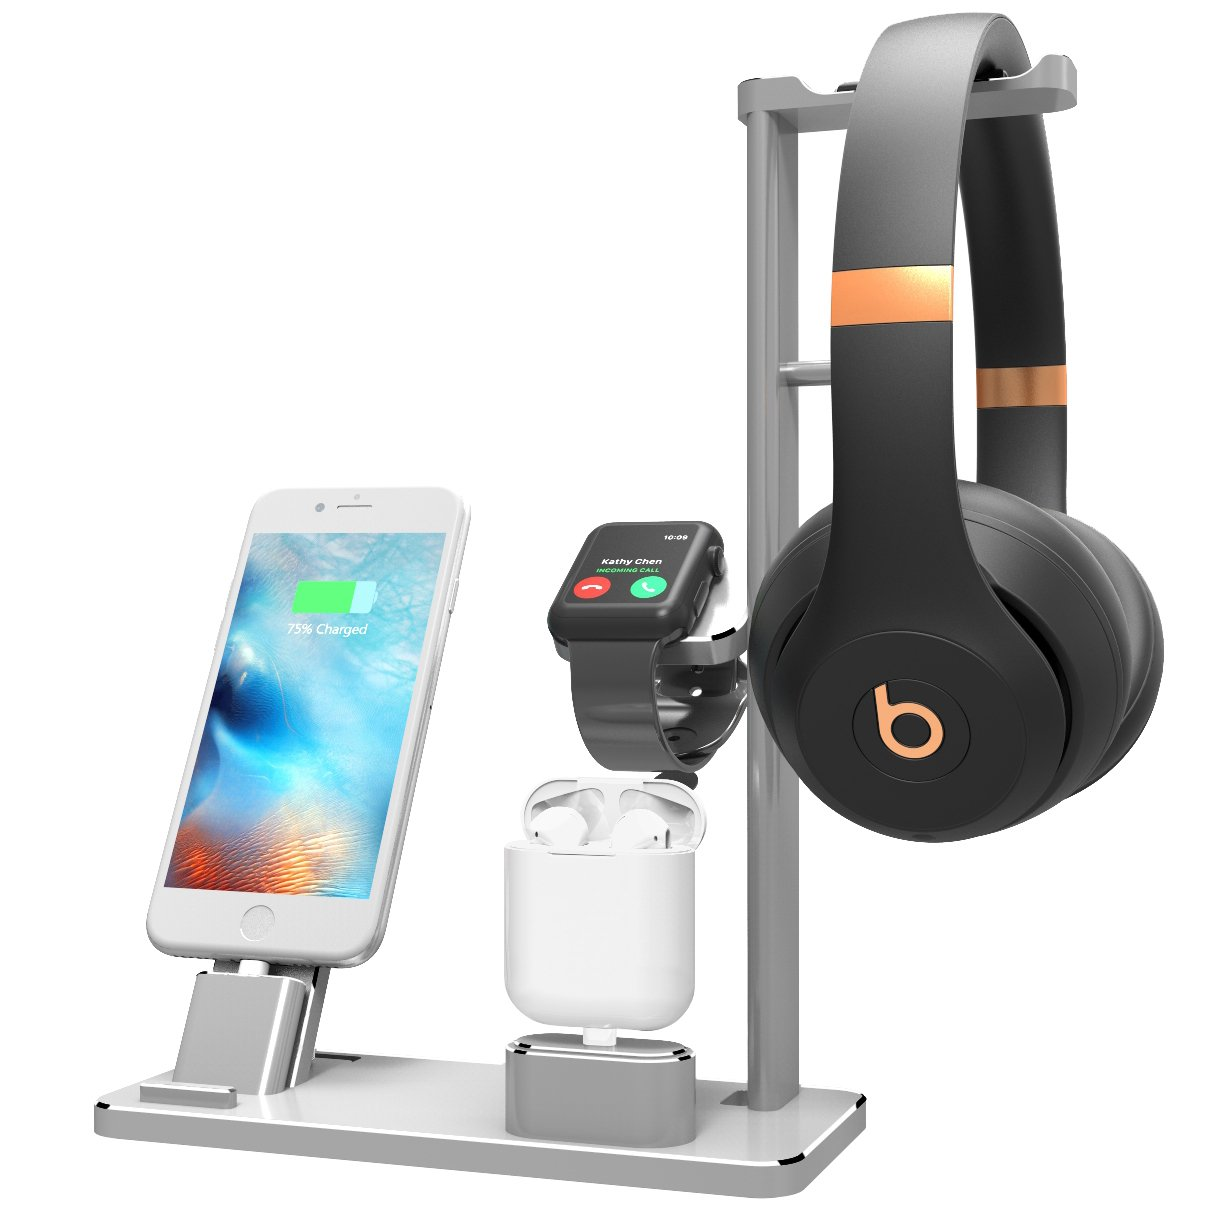 XUNMEJ Watch Stand Compatible for Apple Phone Dock Stand Station Headphones Stand Headset Dock for Apple Watch Series 2/1 AirPods Phone Xs X Max XR 7 7plus 6s 6plus iPad (Silver) by XUNMEJ